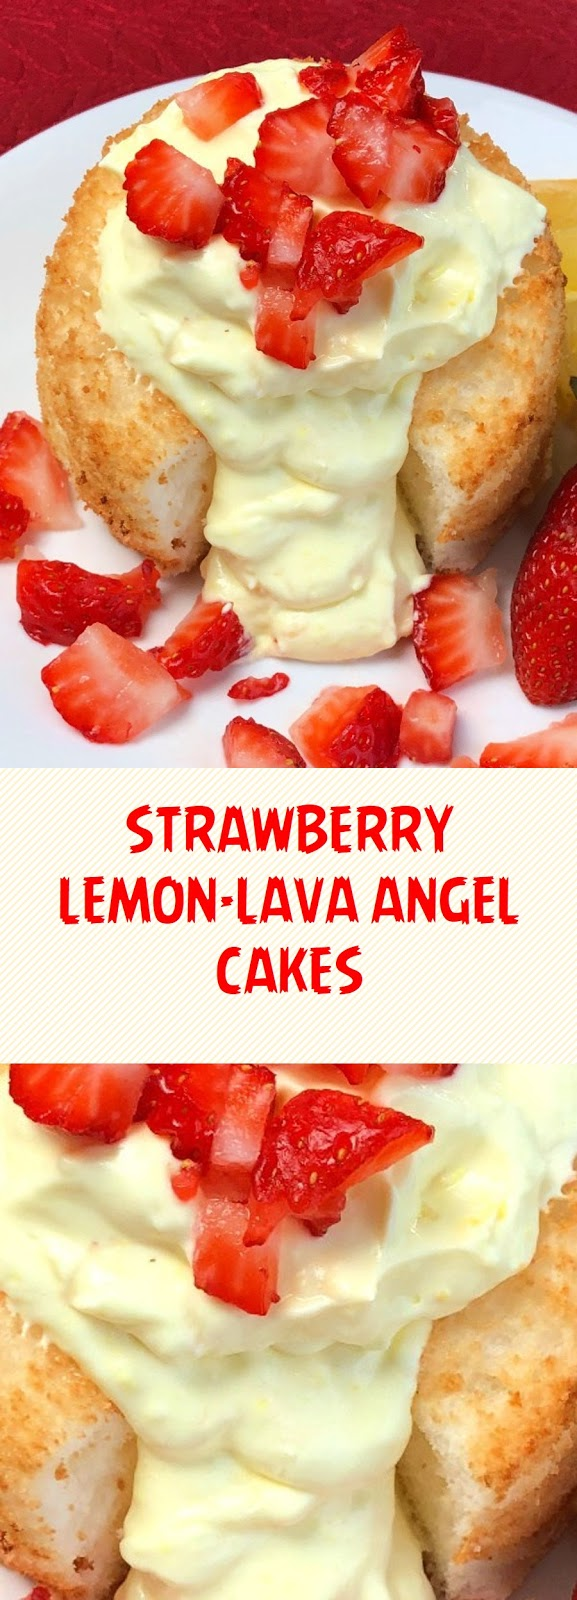 STRAWBERRY LEMON-LAVA ANGEL CAKES